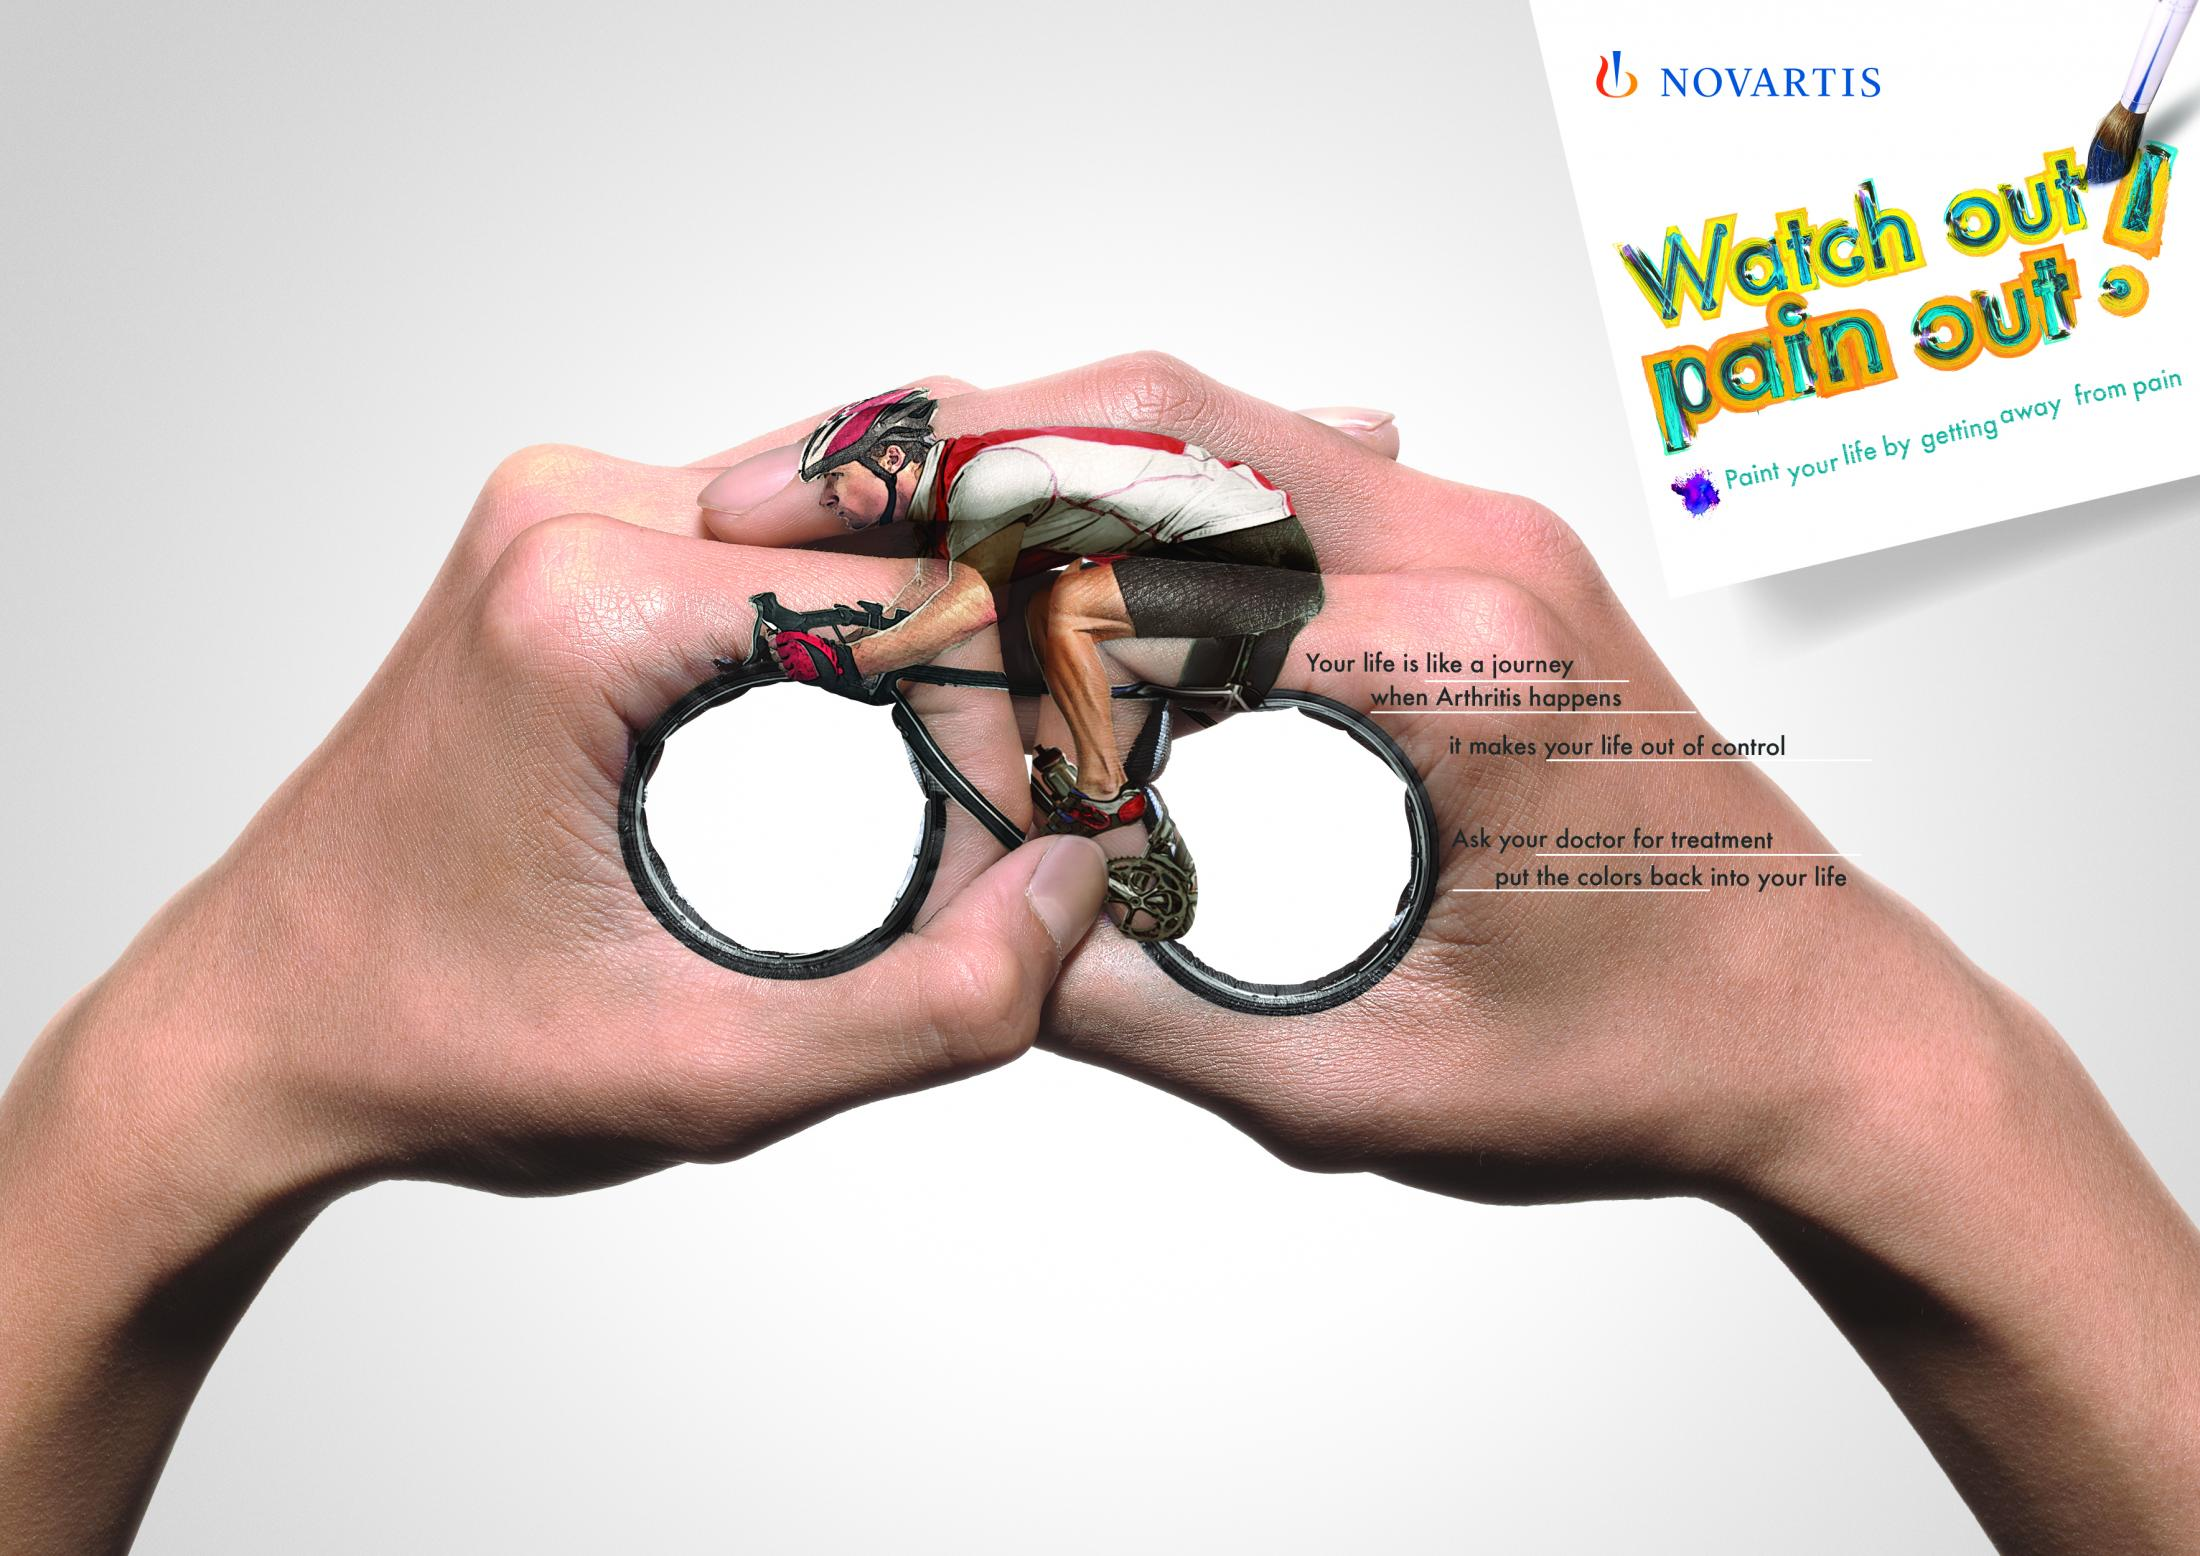 Novartis: Watch out, pain out - Bicycle